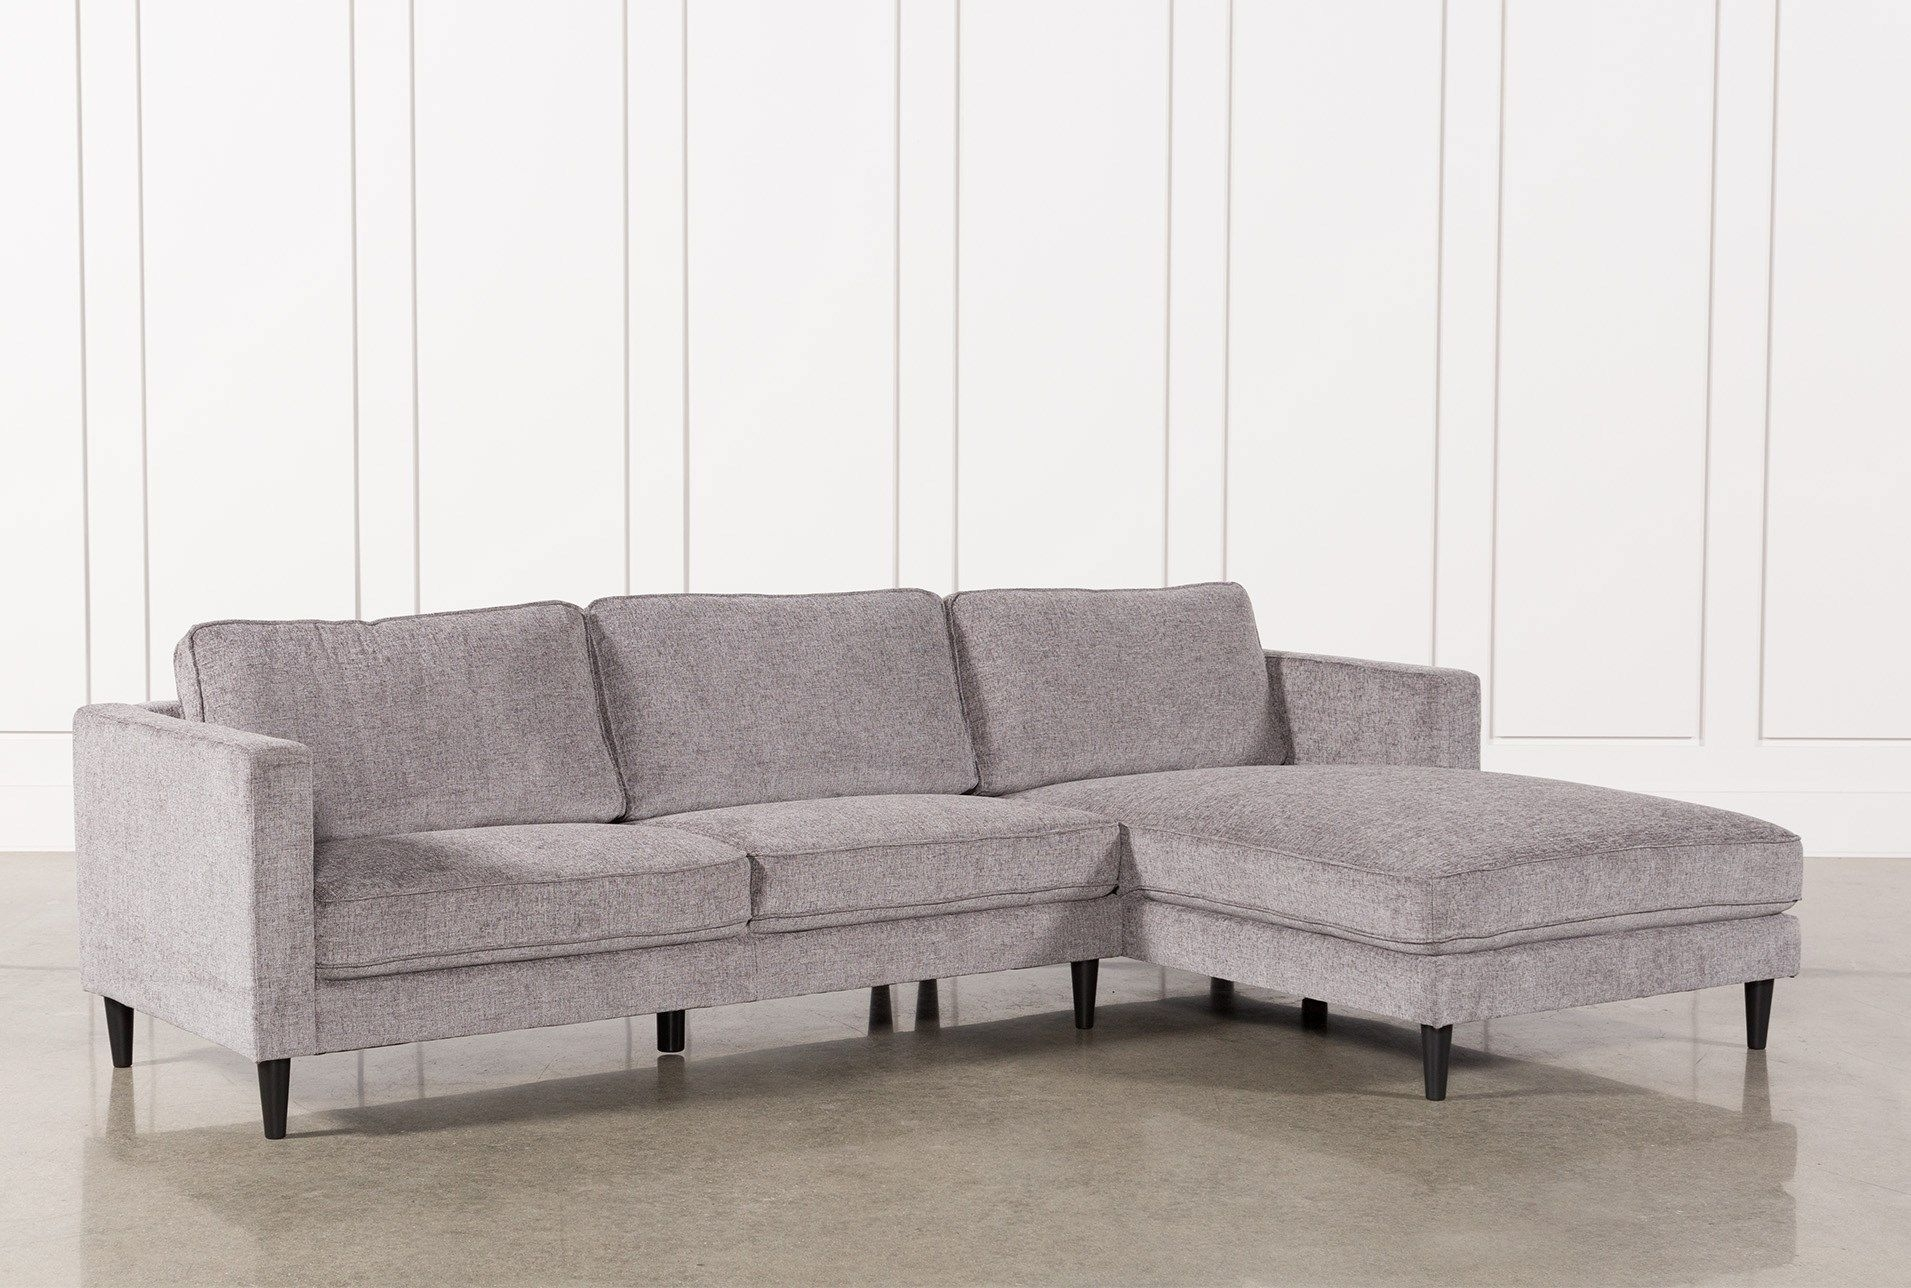 Cosmos Grey 2 Piece Sectional W/raf Chaise | Furniture | Pinterest with regard to Aquarius Light Grey 2 Piece Sectionals With Laf Chaise (Image 14 of 30)